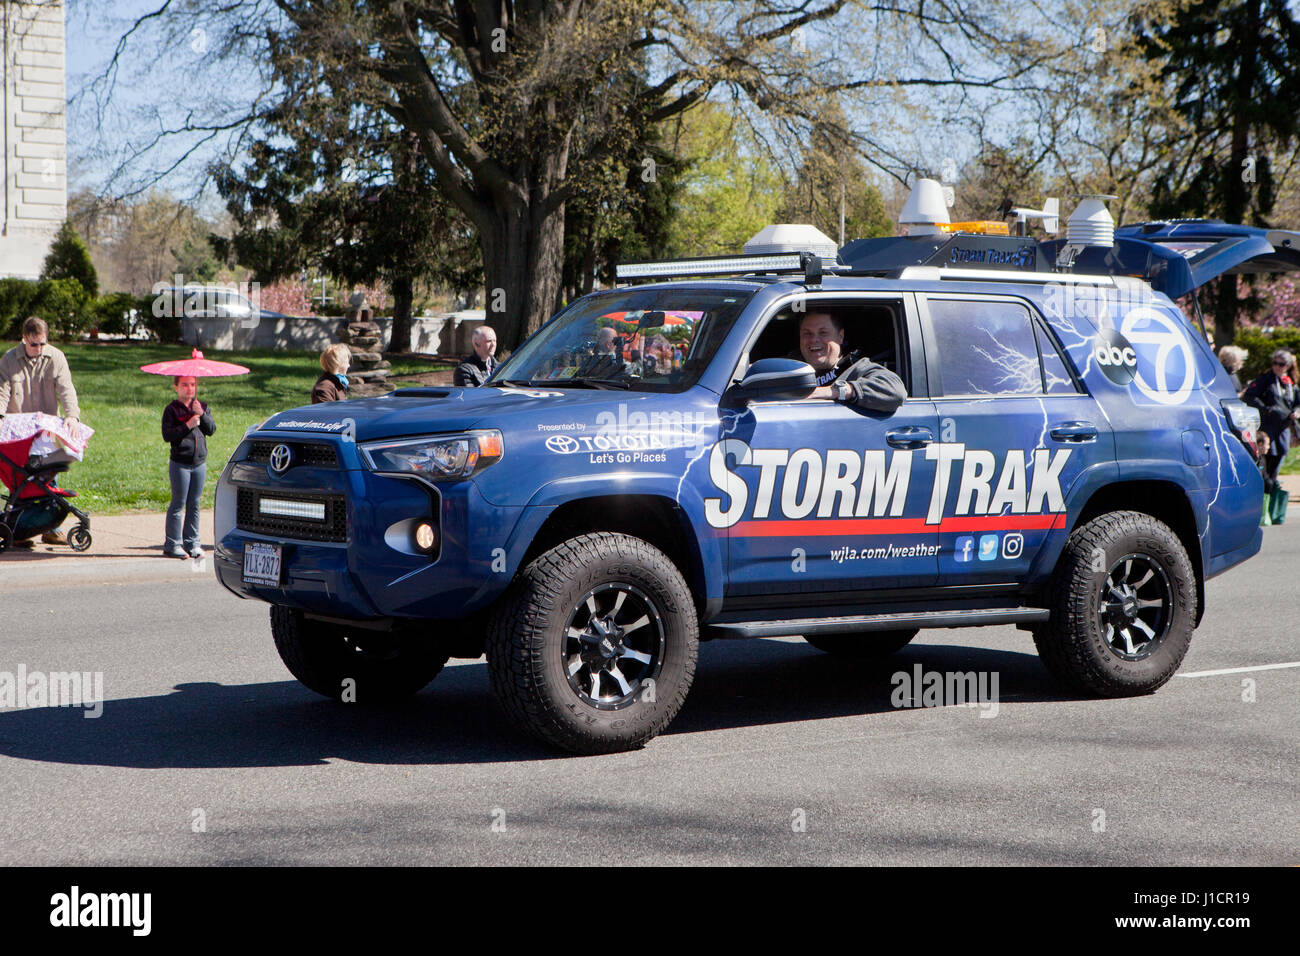 TV News outlet meteorologist storm tracking truck - USA - Stock Image